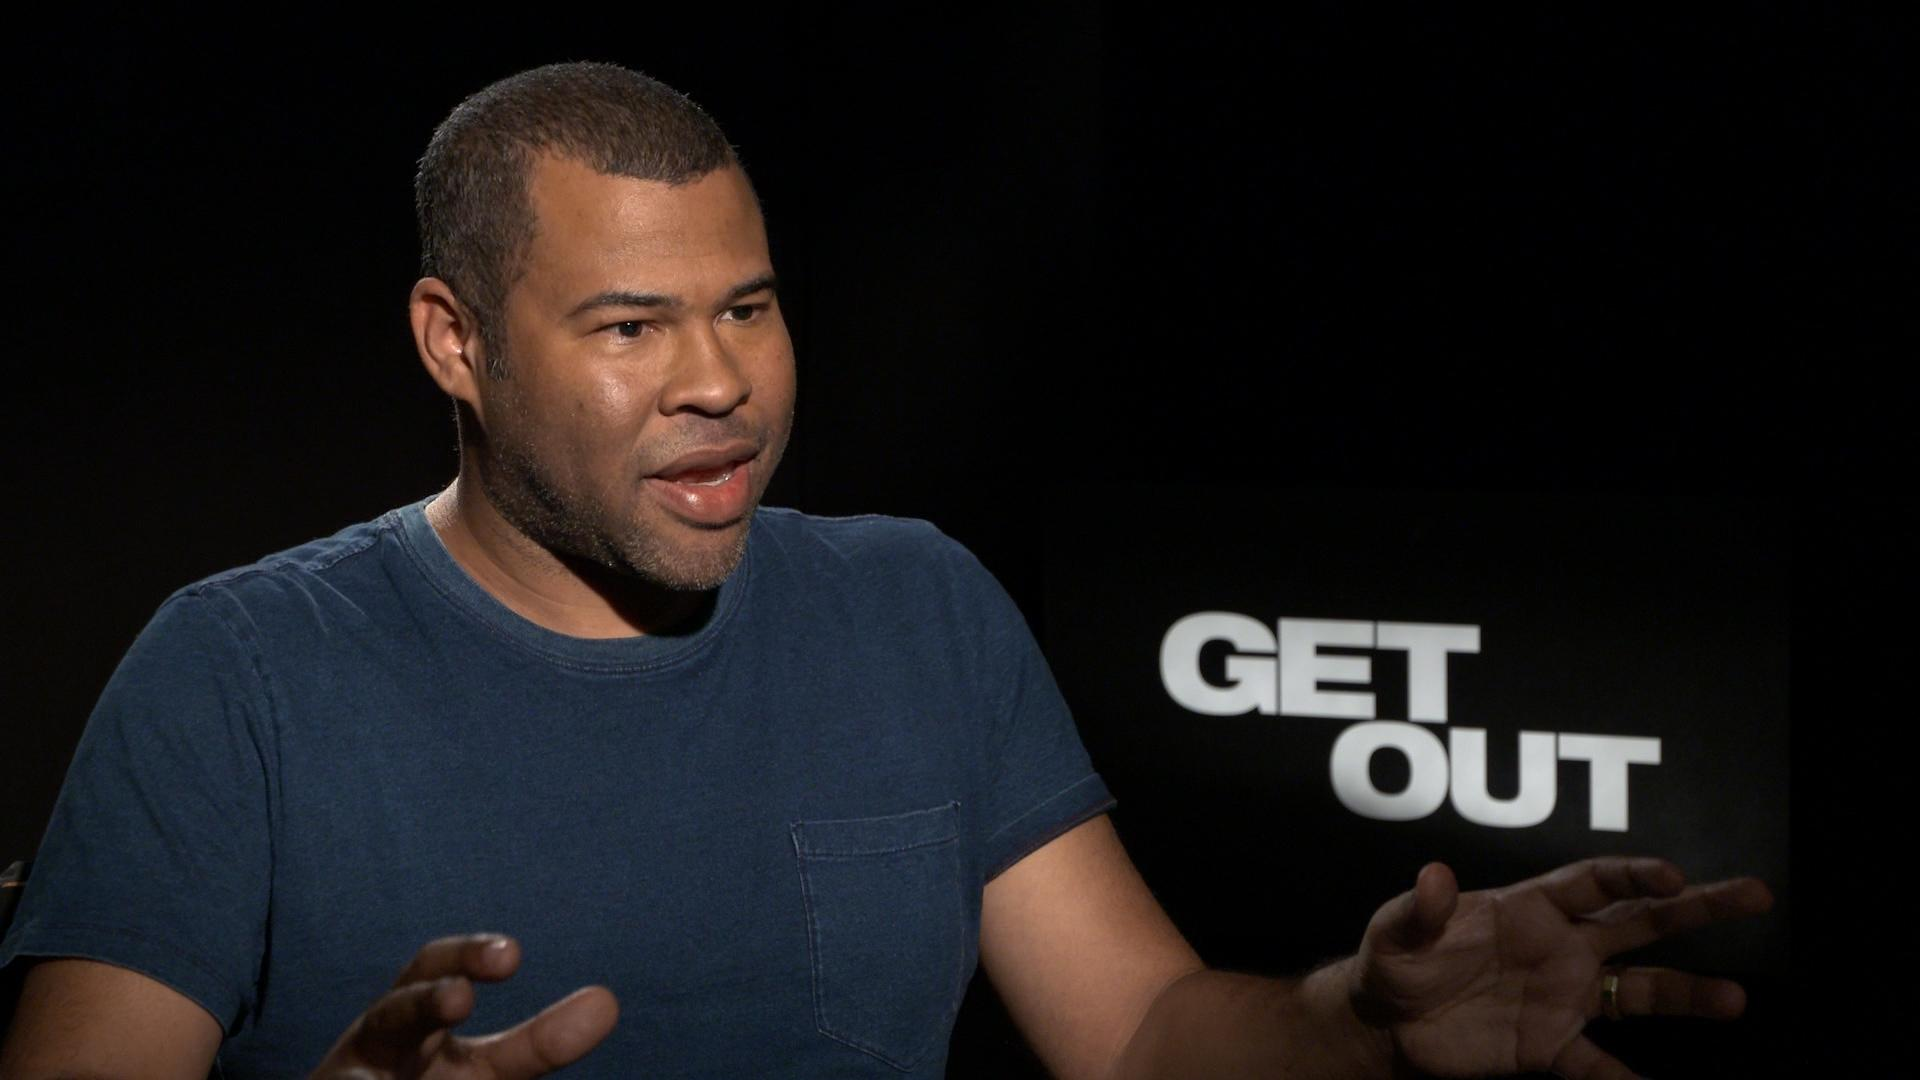 'Get Out' Director Jordan Peele on His Influences and Where He Goes From Here